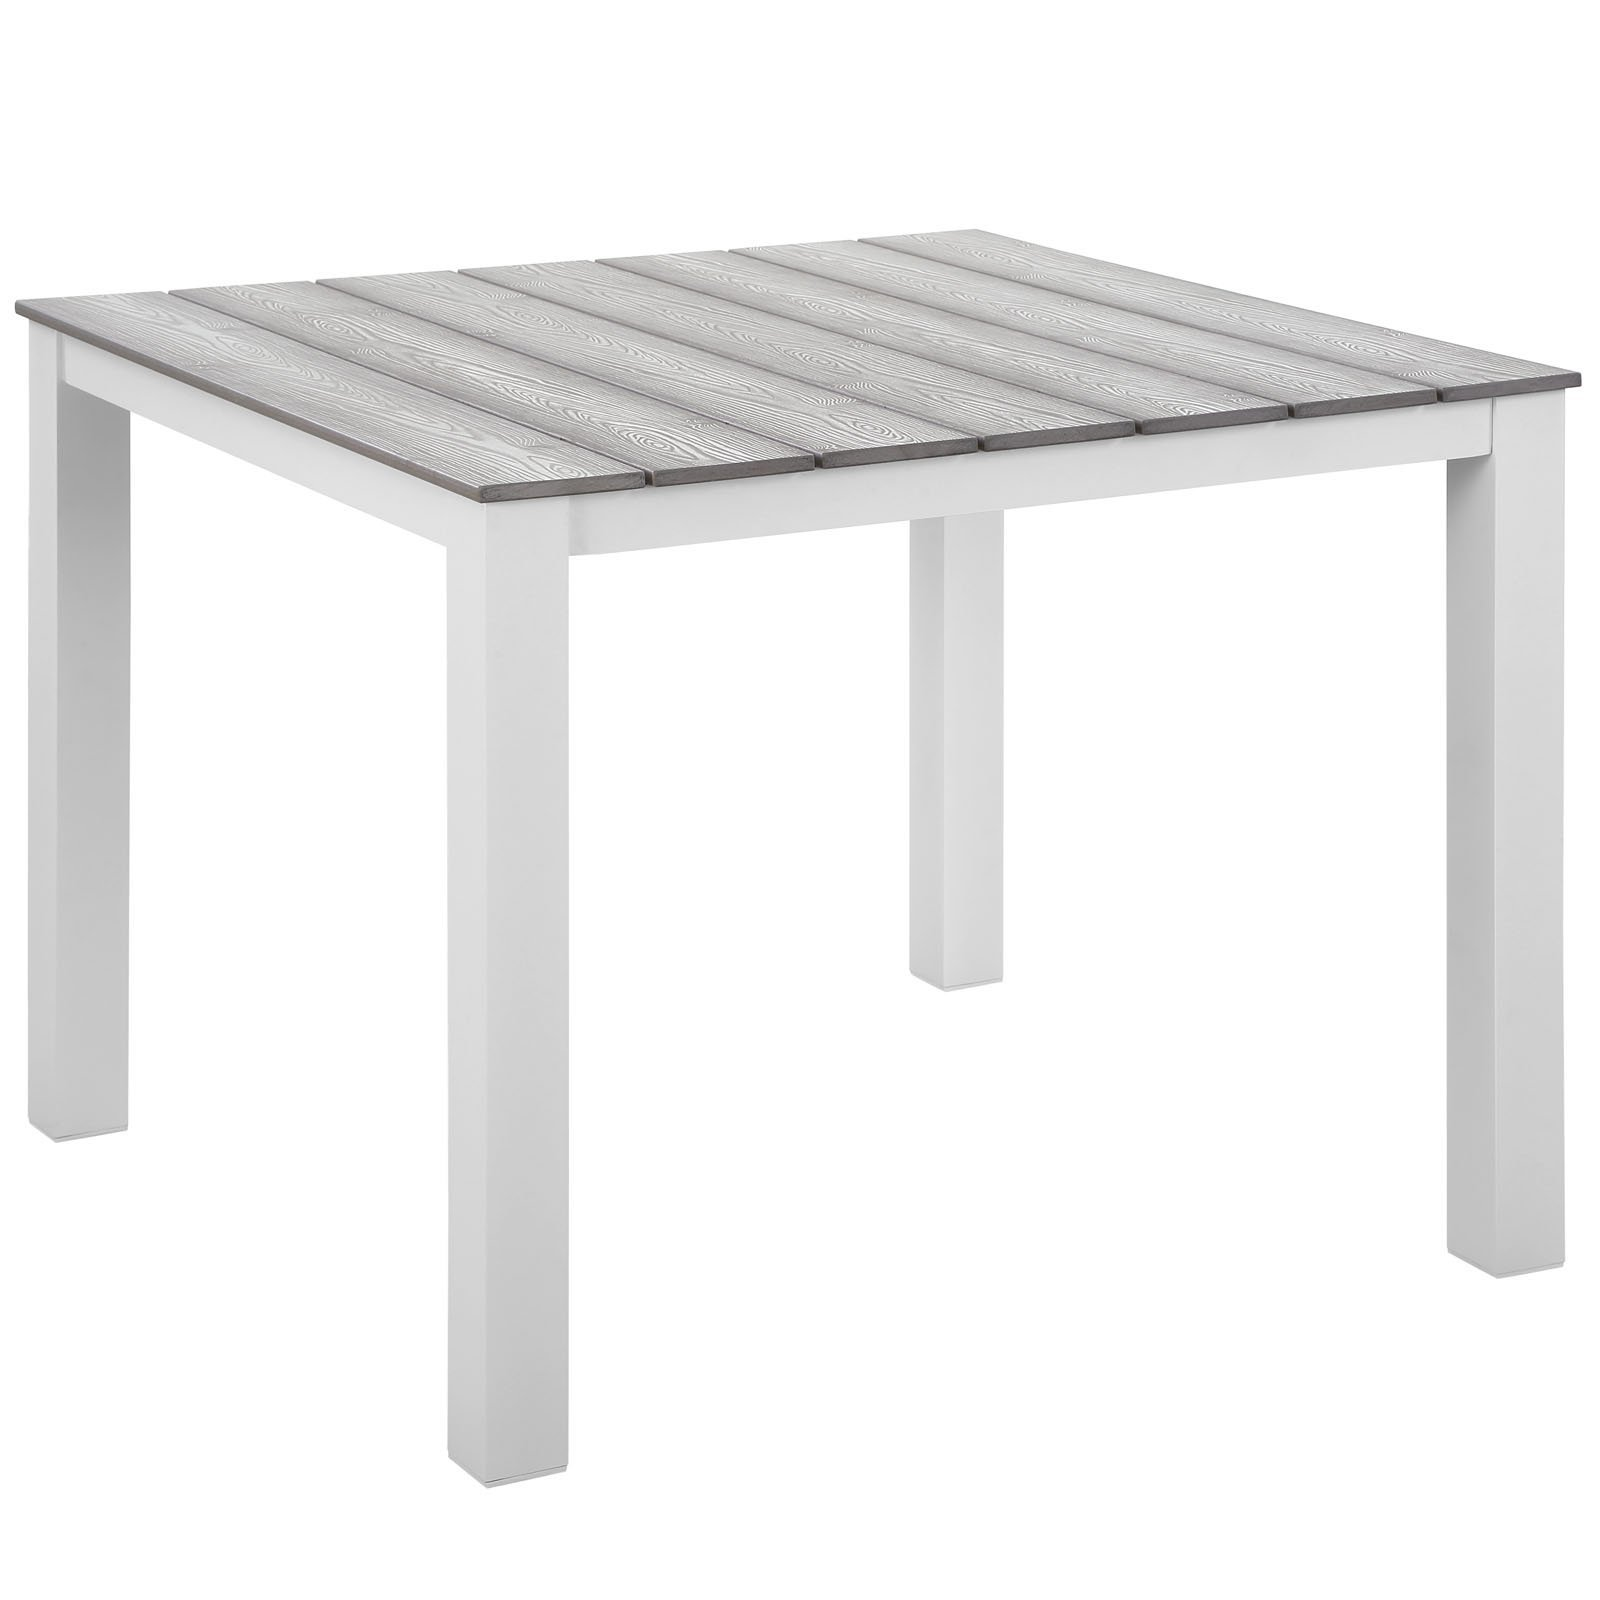 "Maine 40"" Outdoor Patio Dining Table White Light Gray EEI-1507-WHI-LGR"